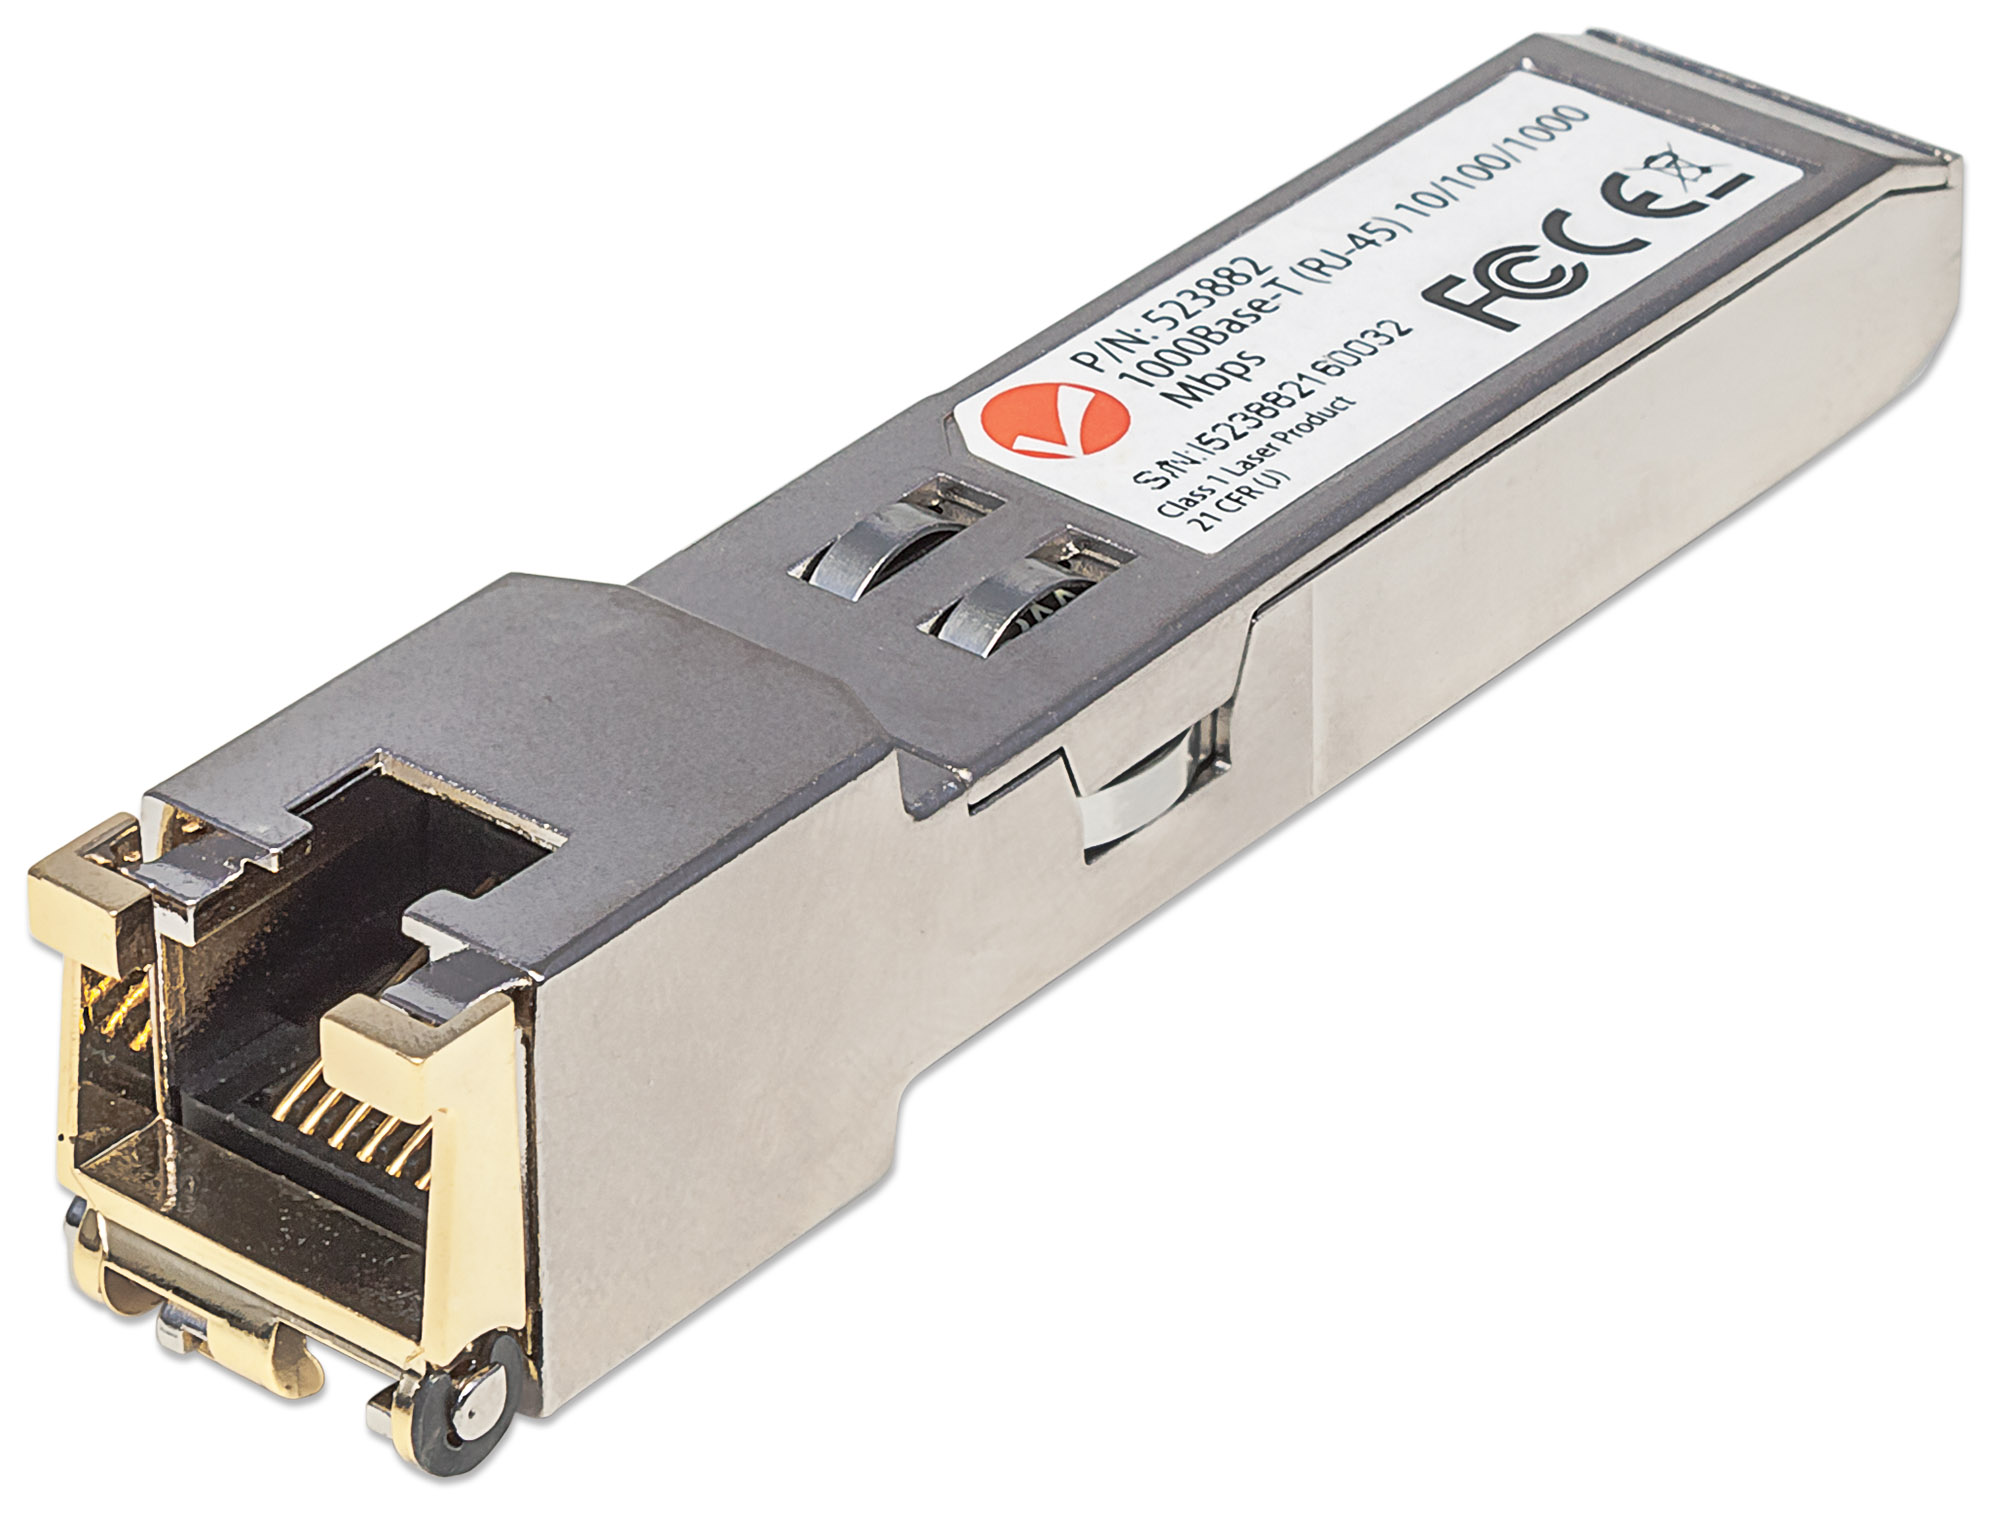 Gigabit RJ45 Copper SFP Transceiver Module